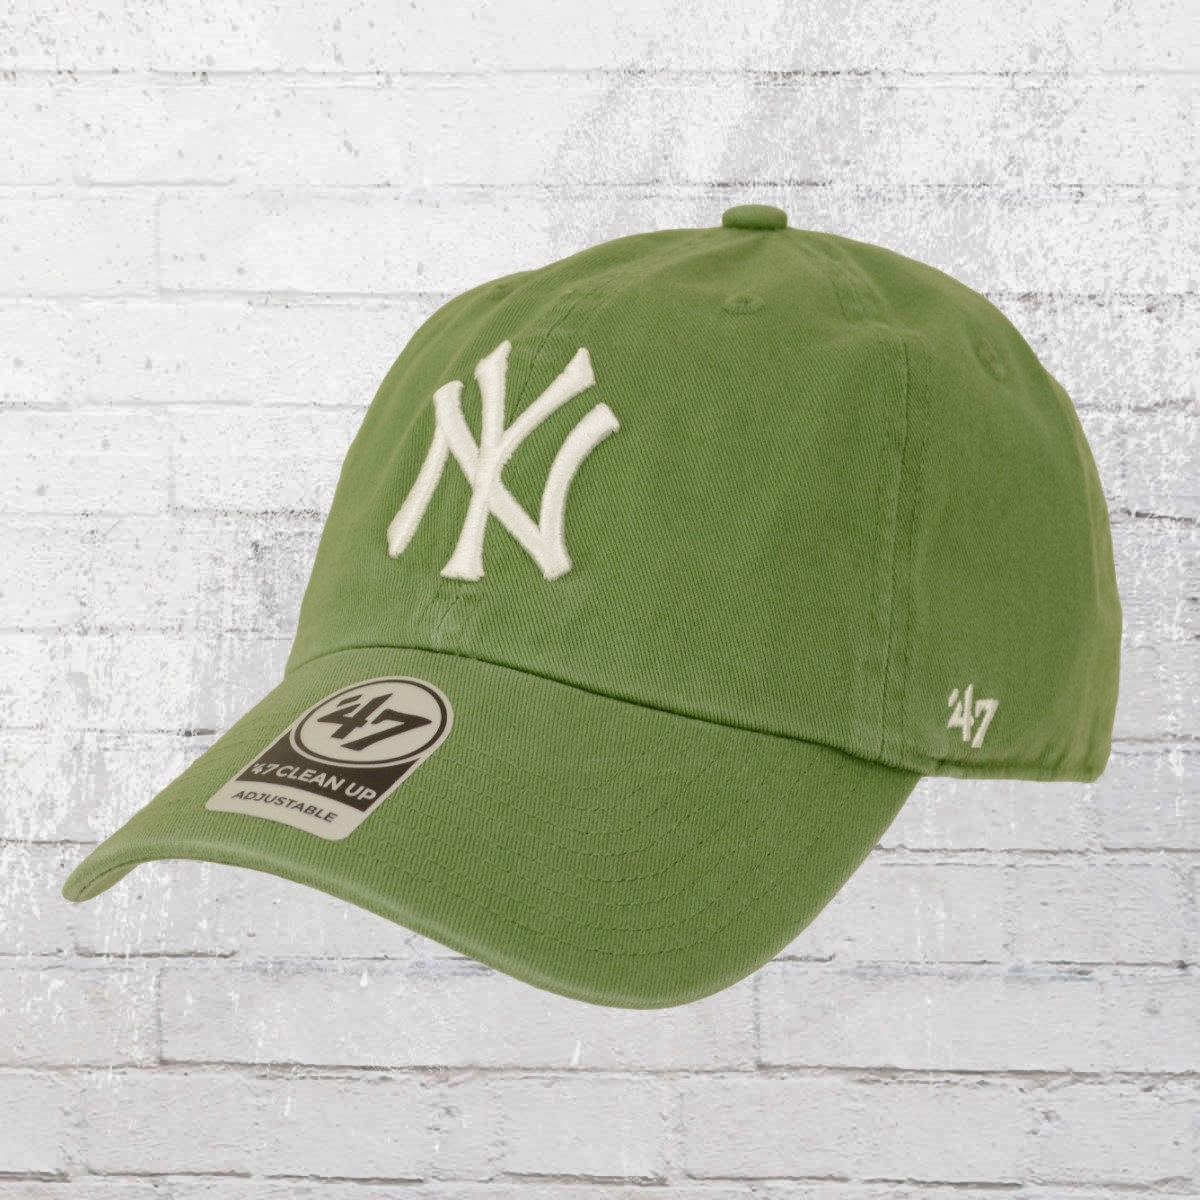 a09cea0e3ce 47 Brands Clean Up Baseball League Cap NY Yankees fatigue green. ›‹ «